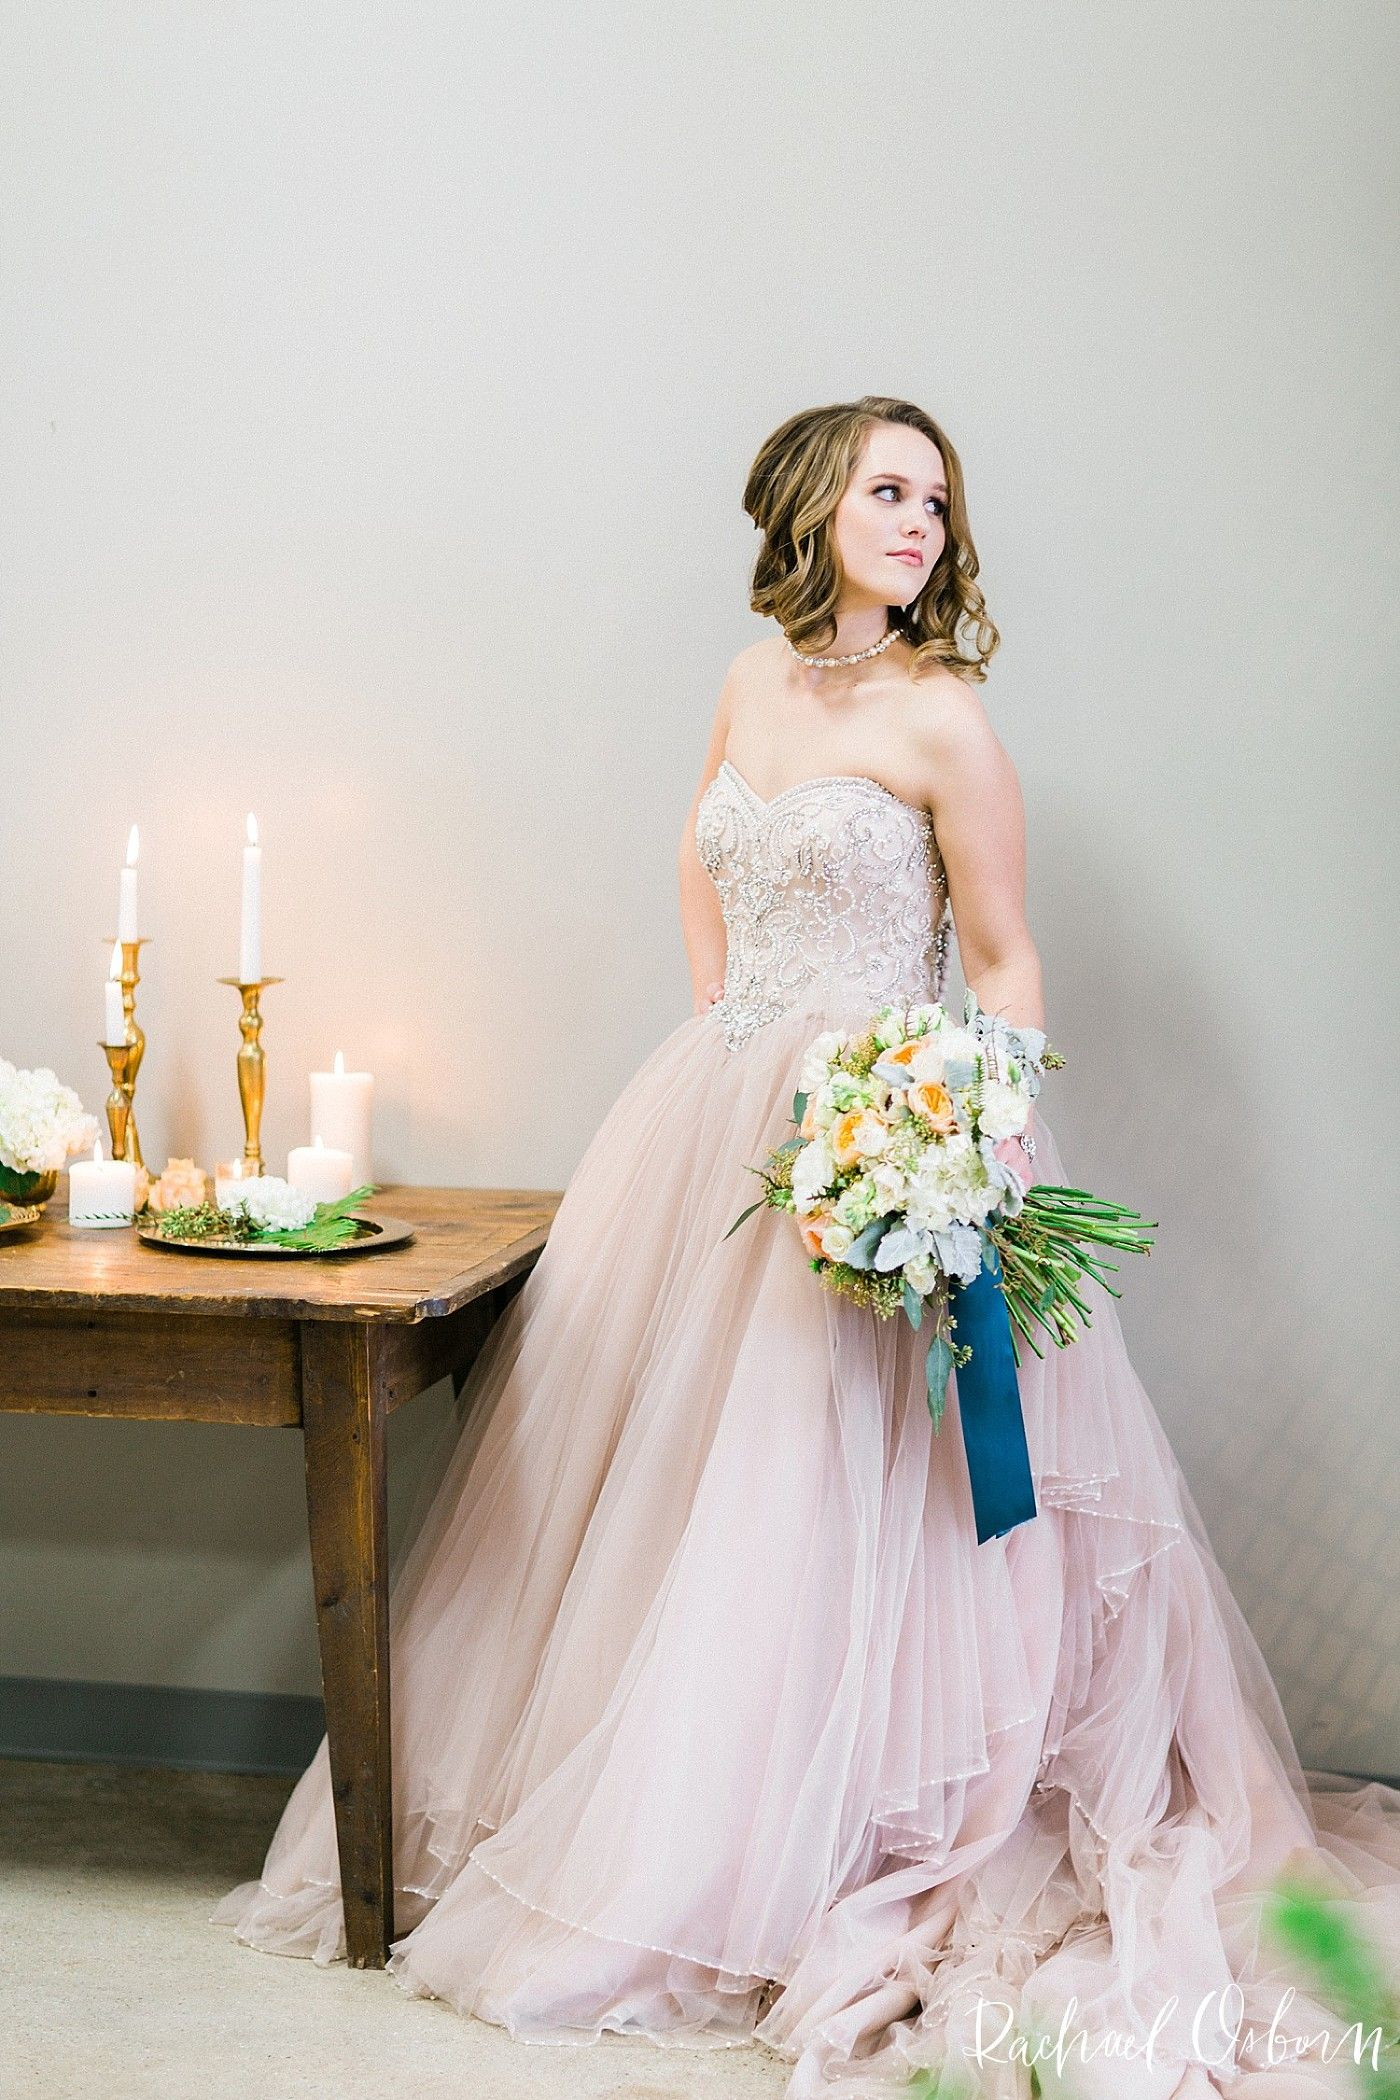 c6ed69e99c04 the perfect nontraditional wedding dress! blush rose wedding gown by justin  alexander with blue orange blush and green floral accents - the right way  to ...